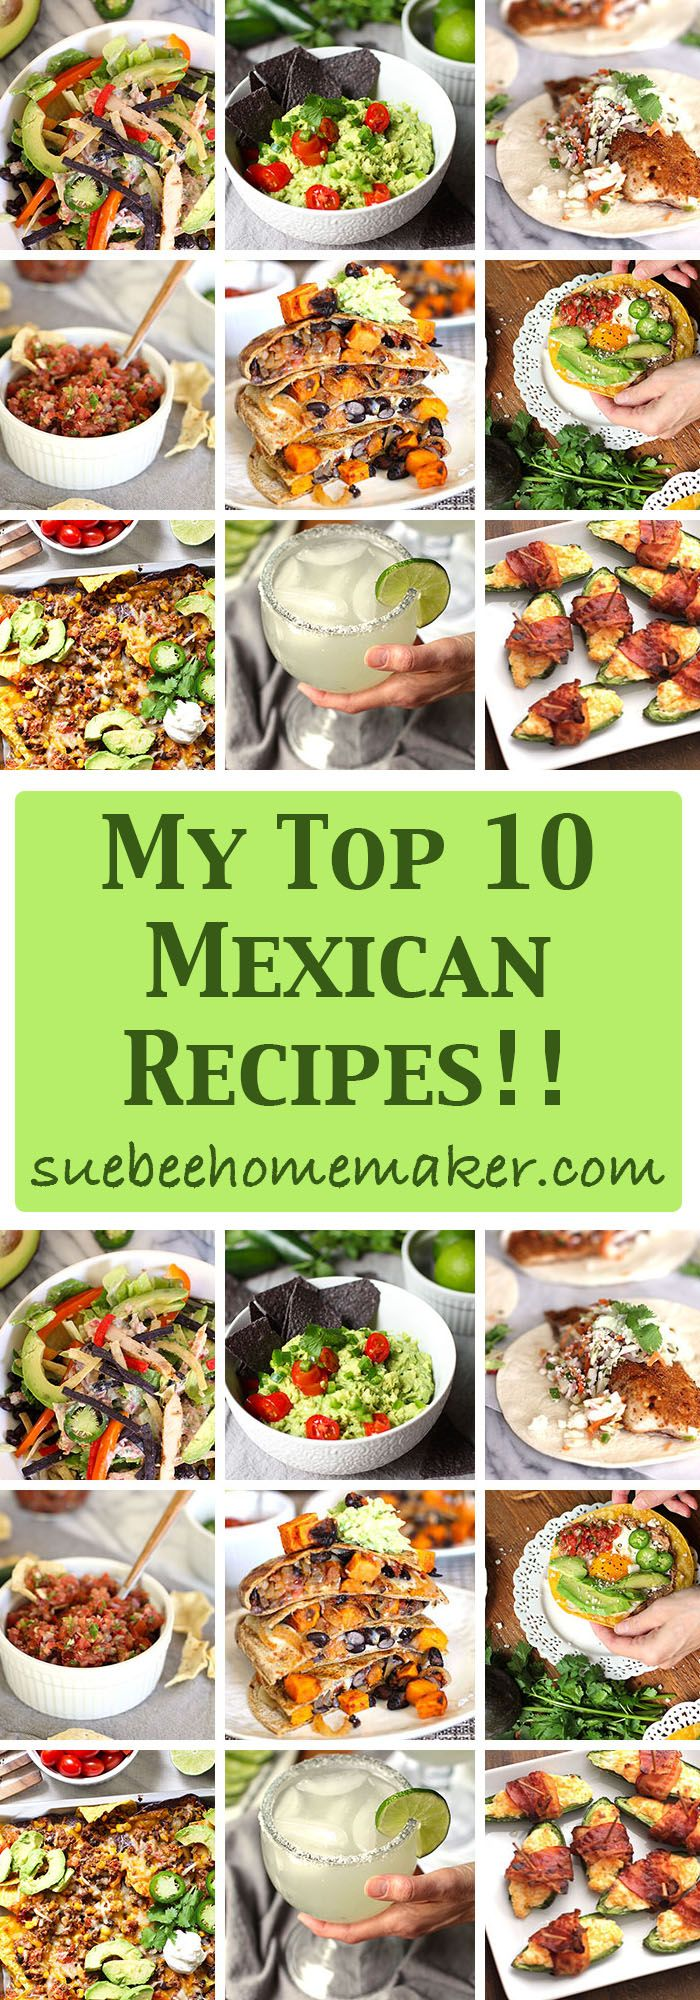 I've listed my top 10 Mexican food and drink recipes for your Cinco de Mayo party, or just any gathering of family and friends! Enjoy!